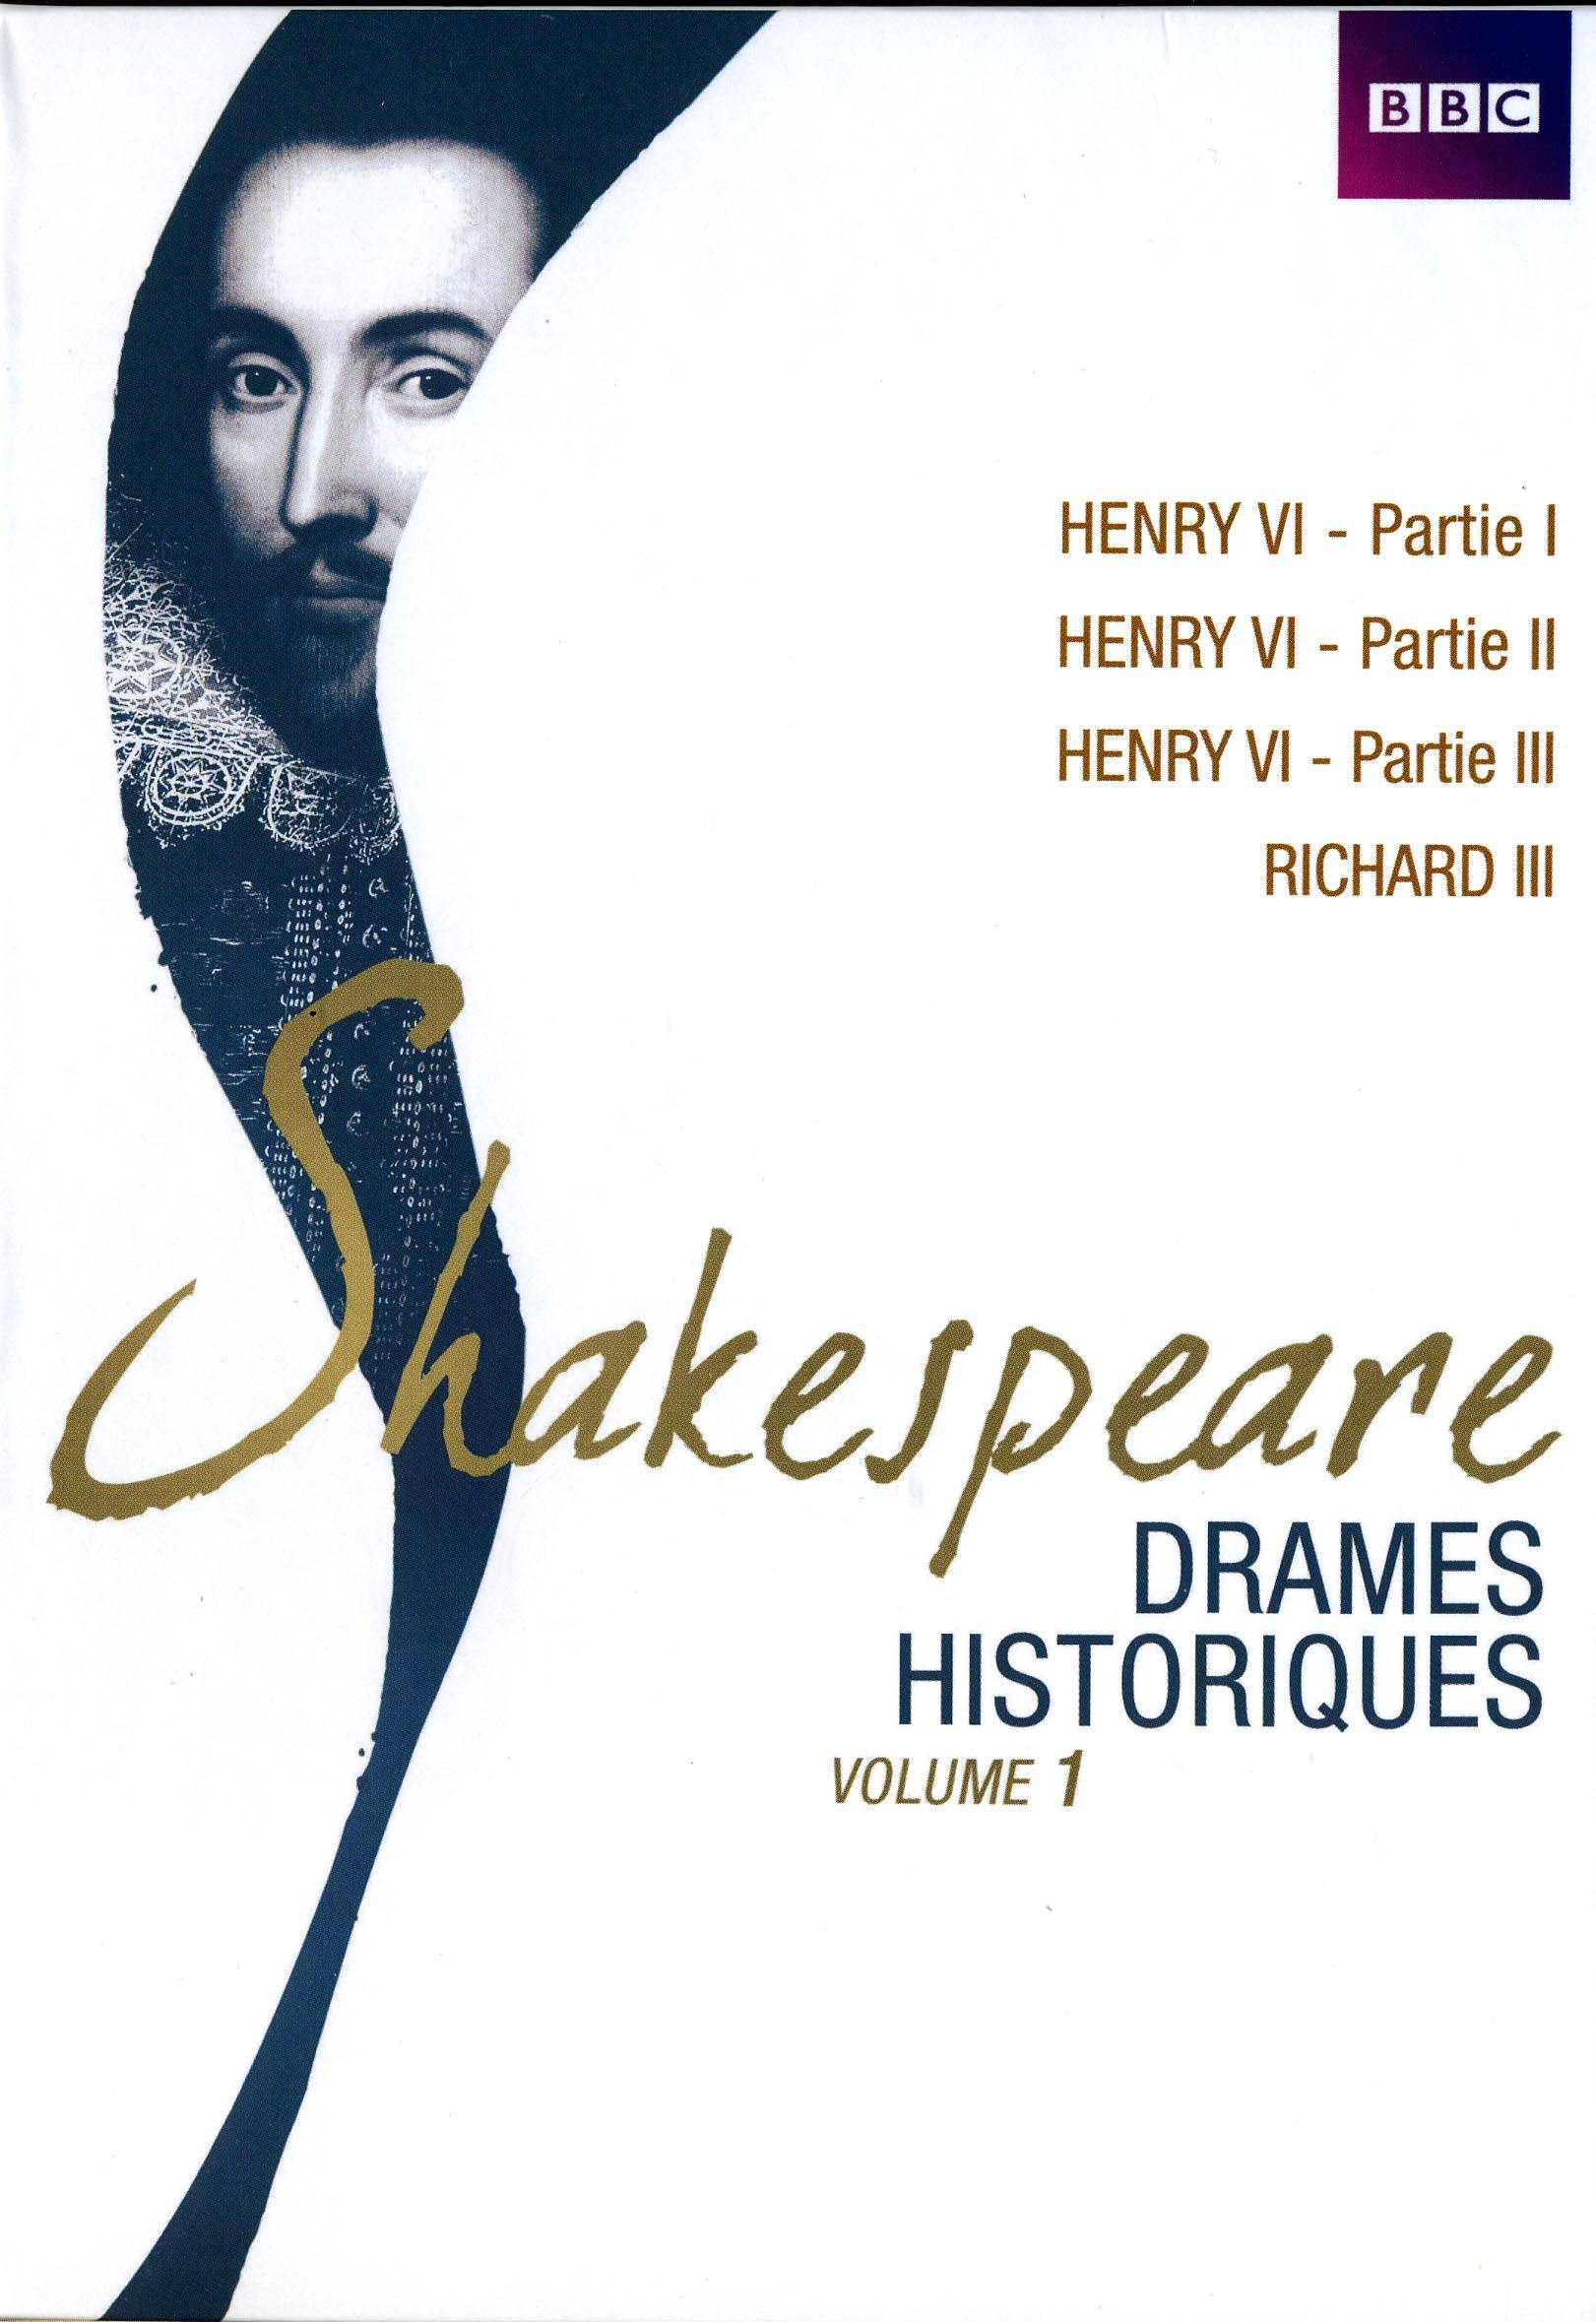 Shakespeare drames historiques - vol 1 - 7dvd